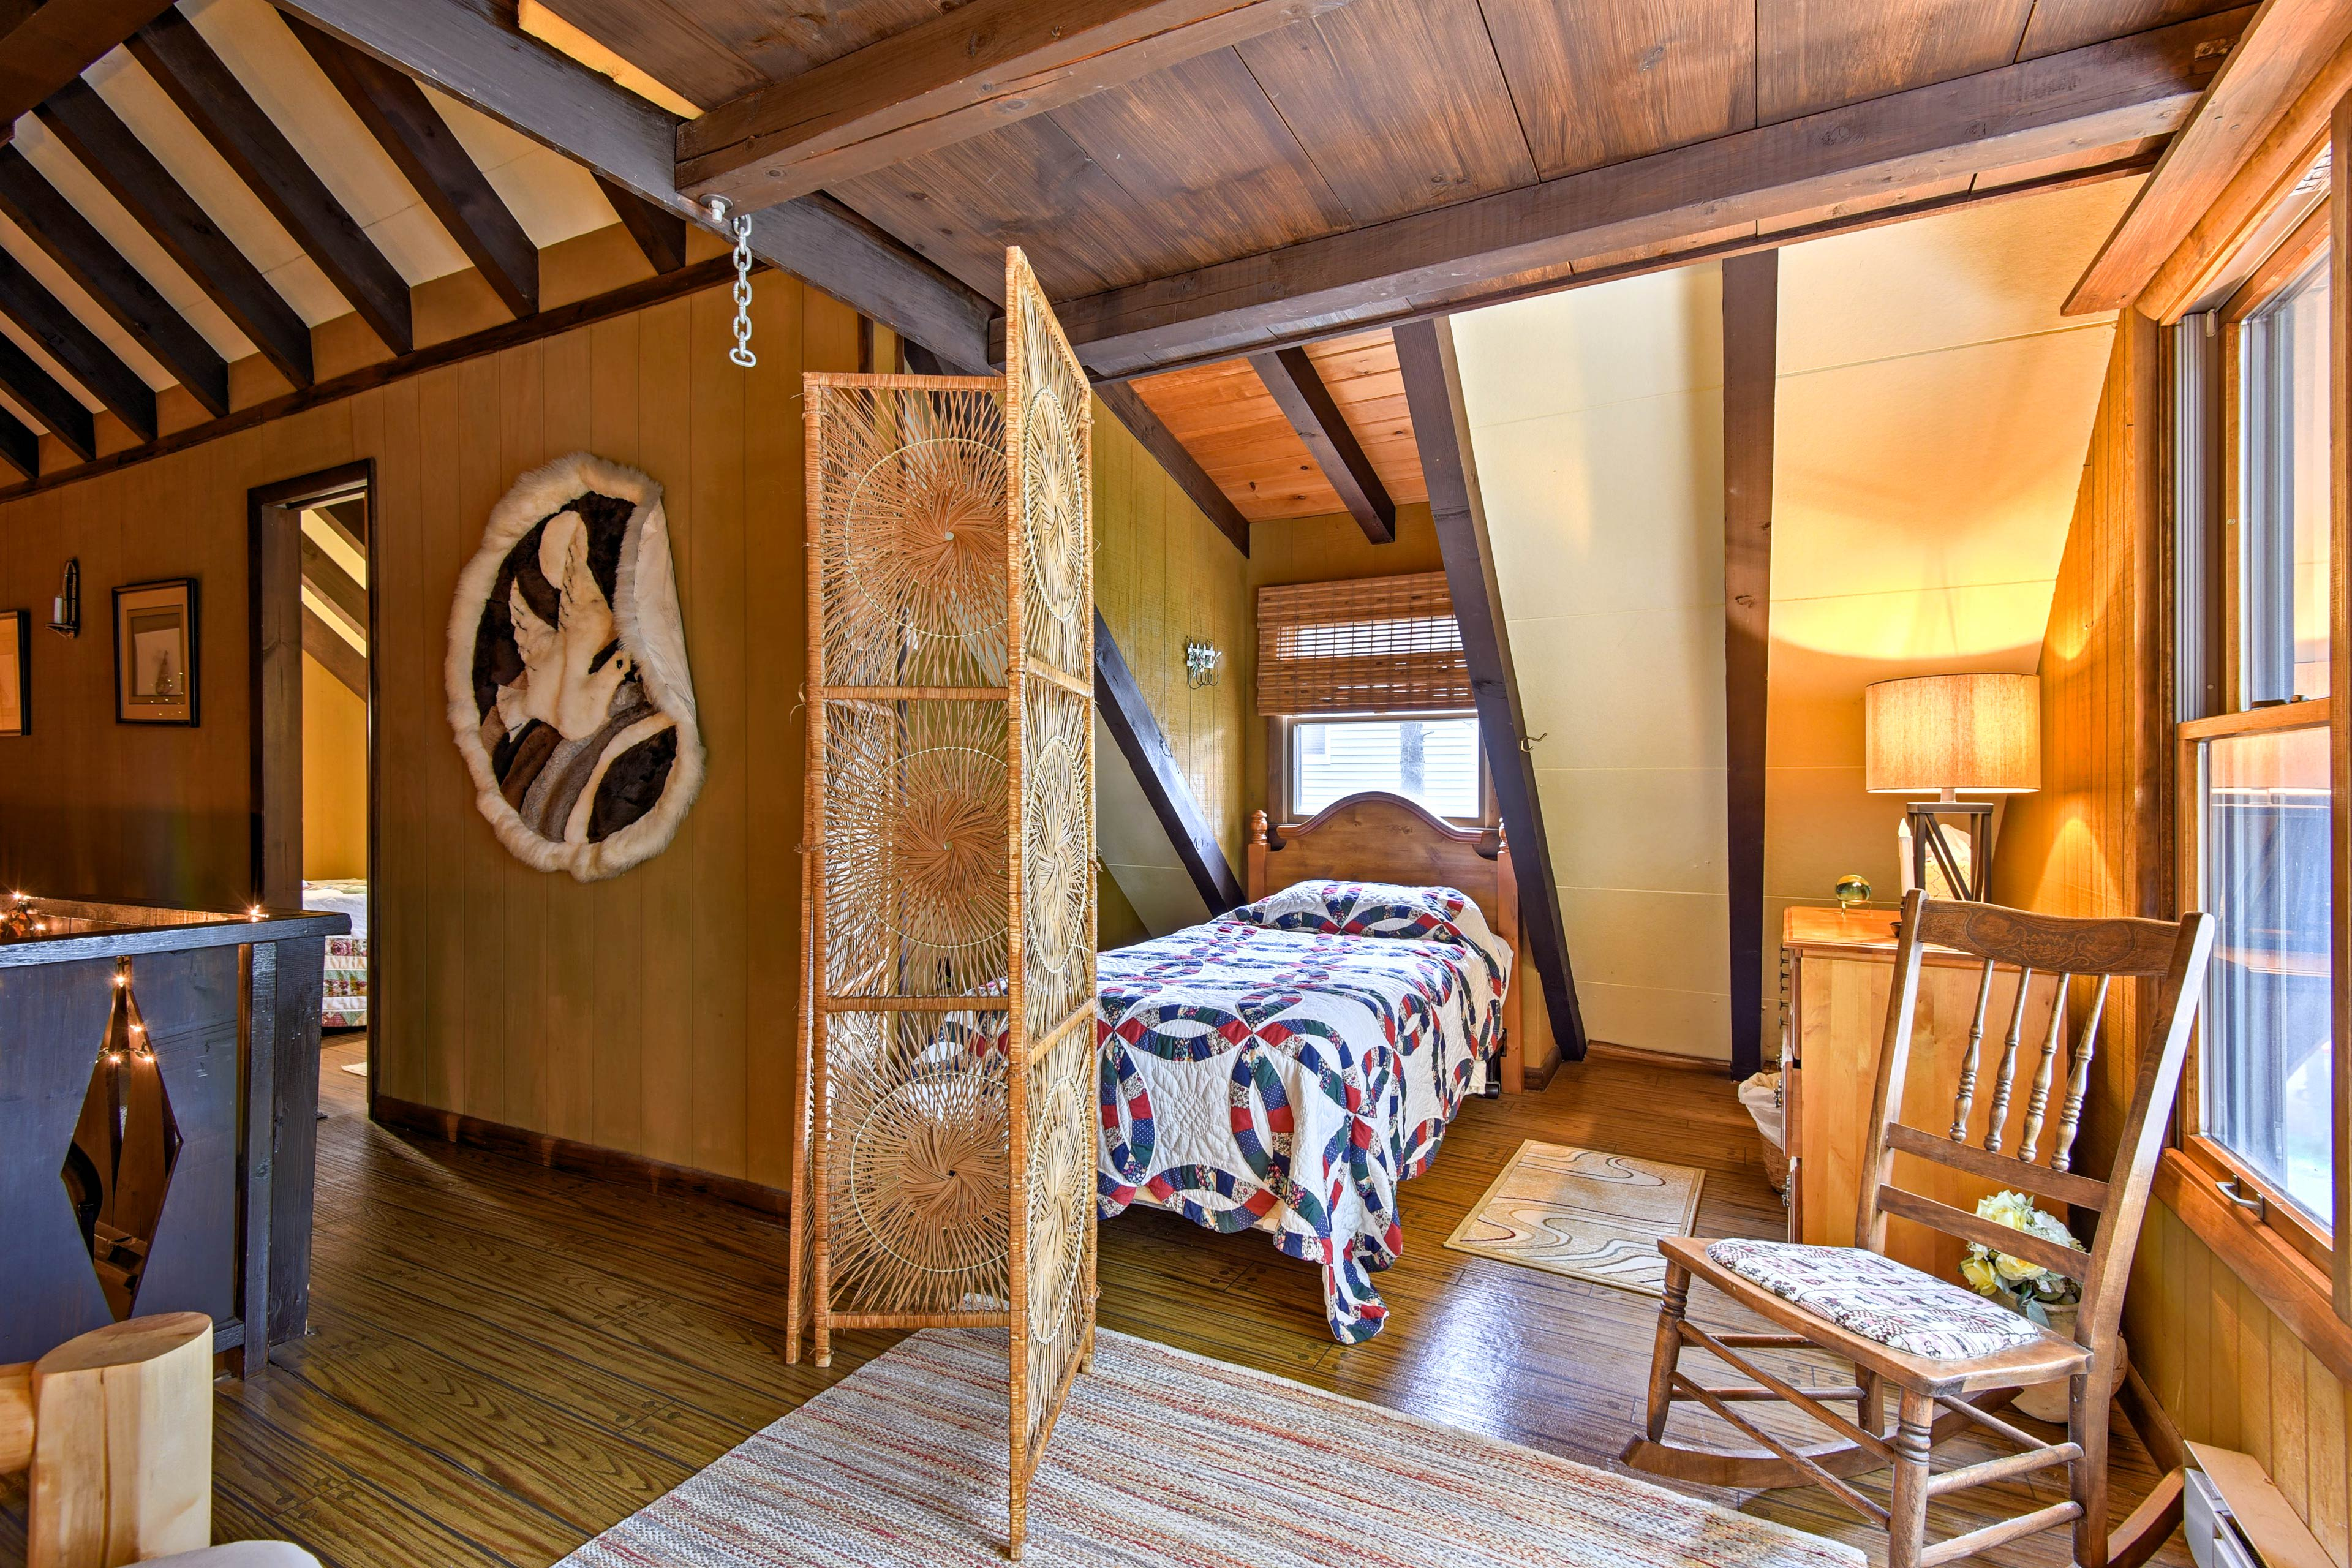 The loft has extra sleeping spaces, like this semi-private twin bed.